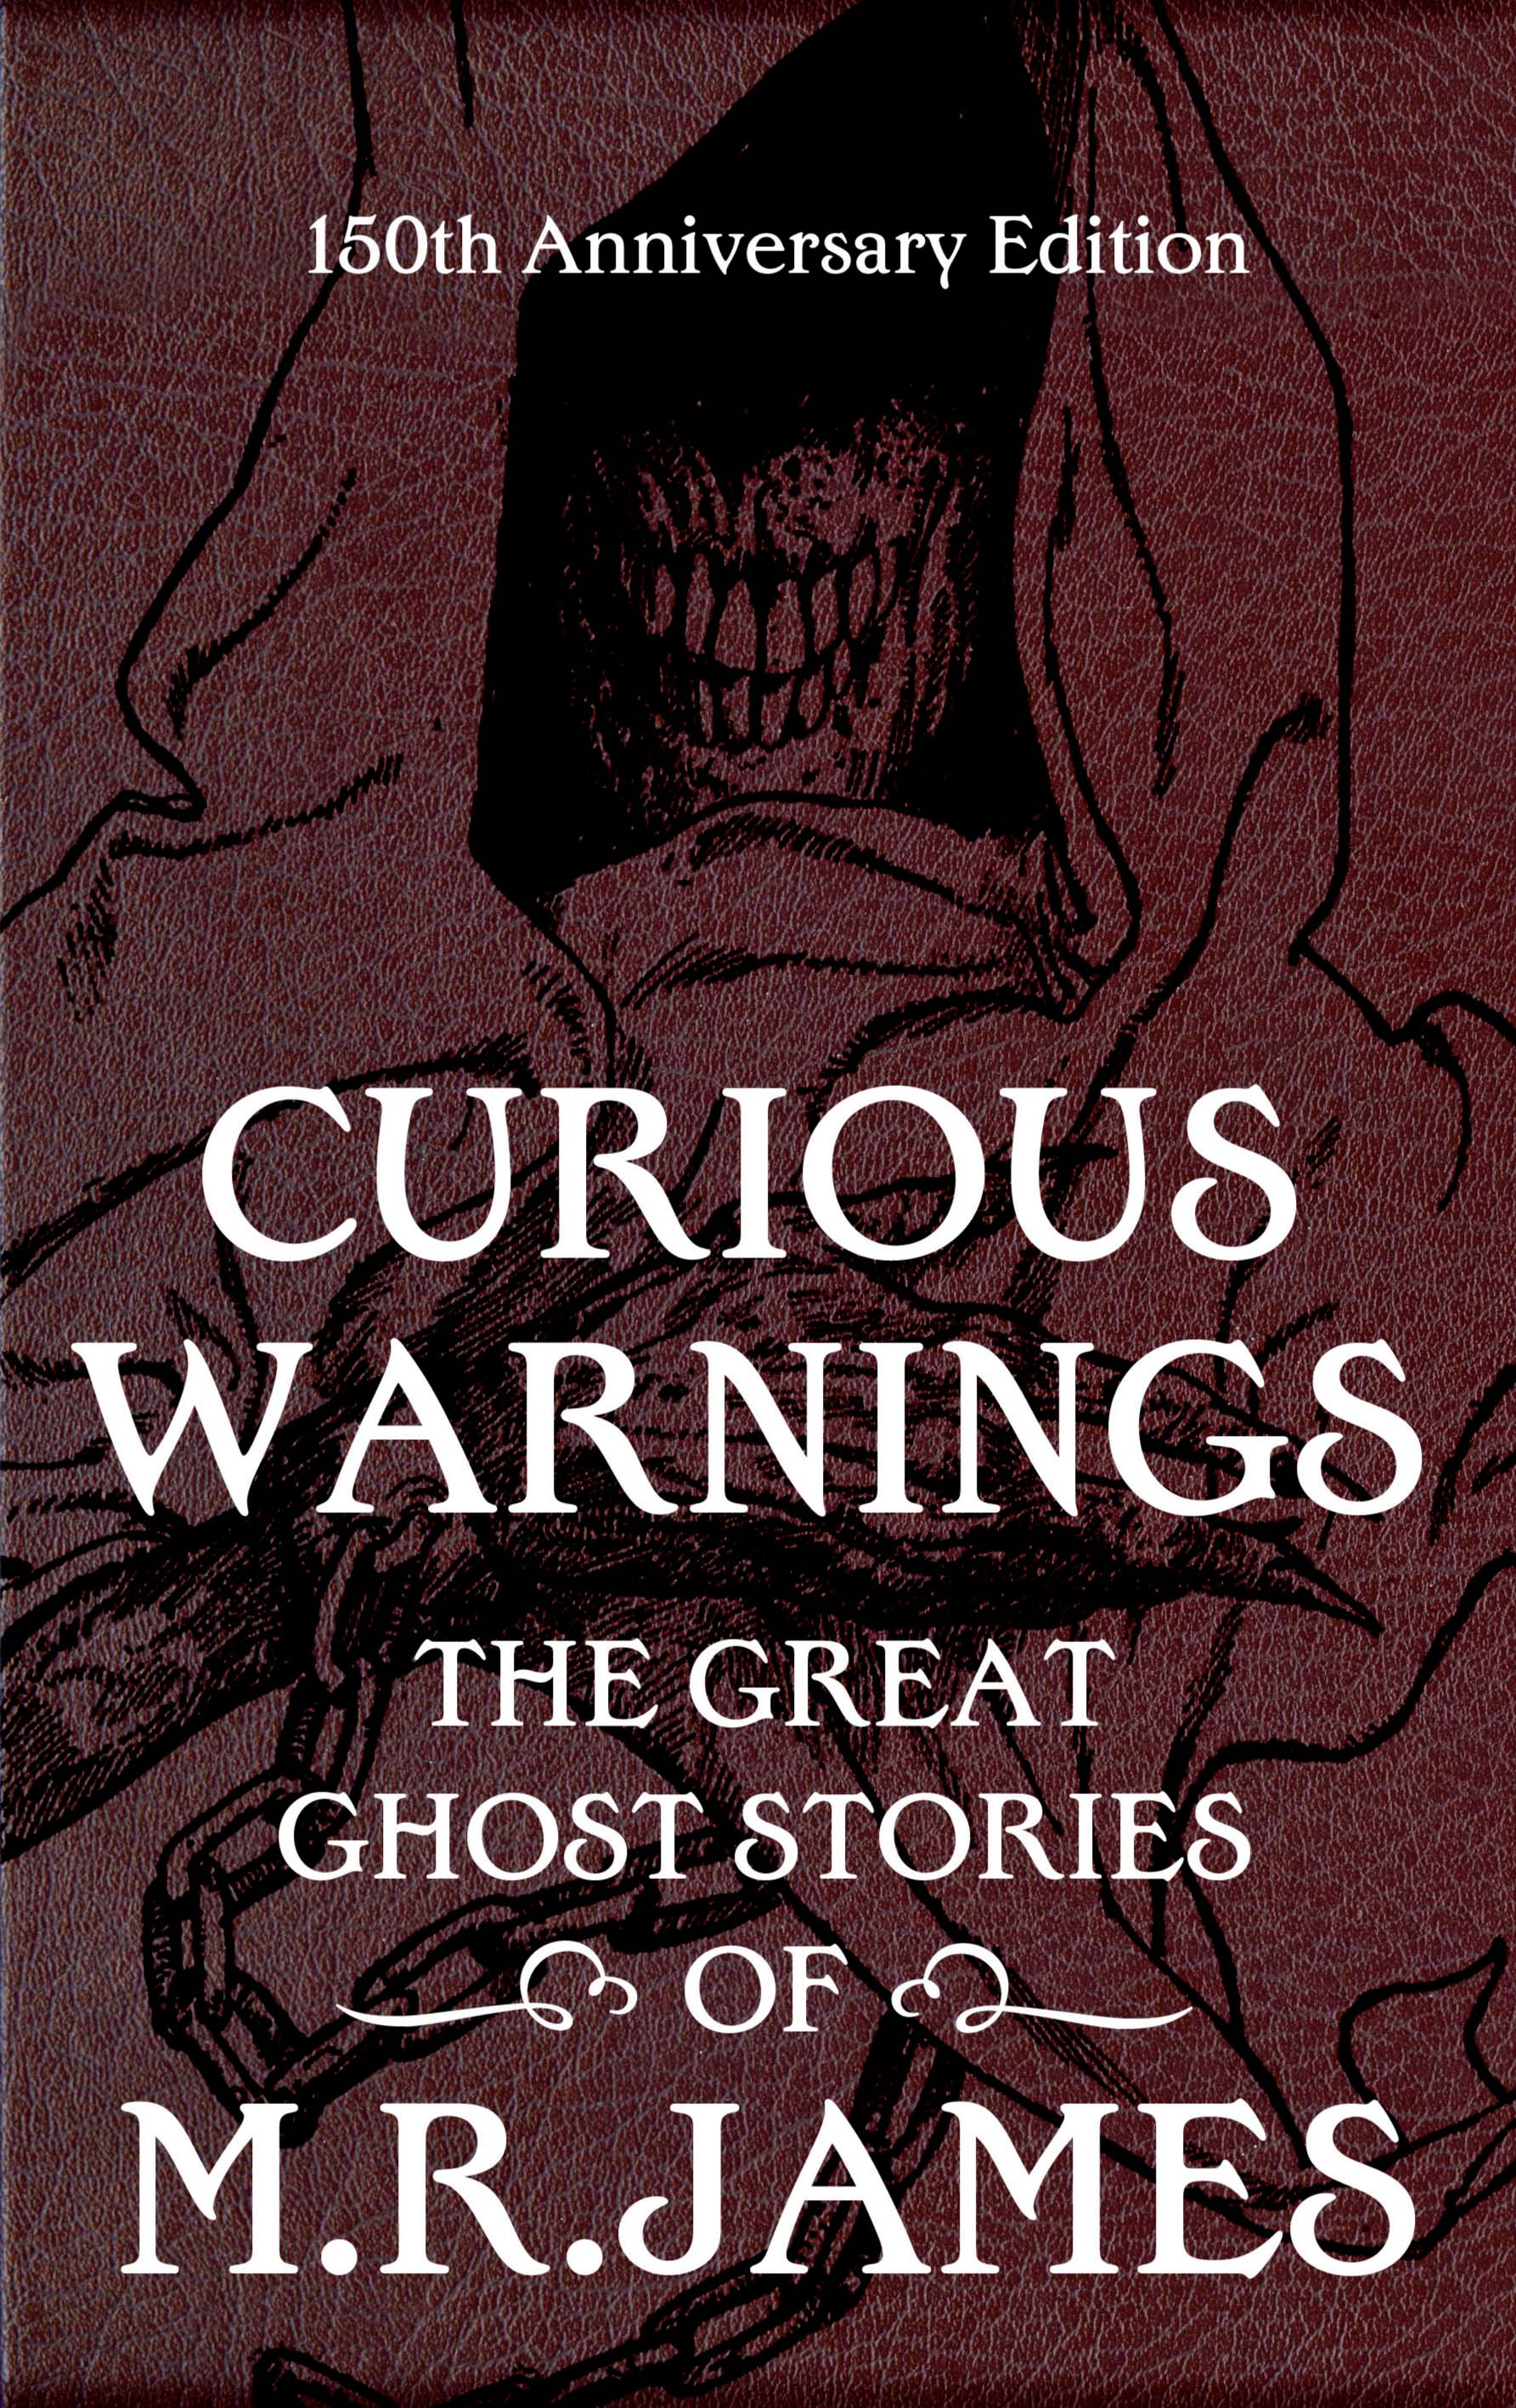 Curious Warnings: The Great Ghost Stories of M.R. James The Great Ghost Stories of M.R. James